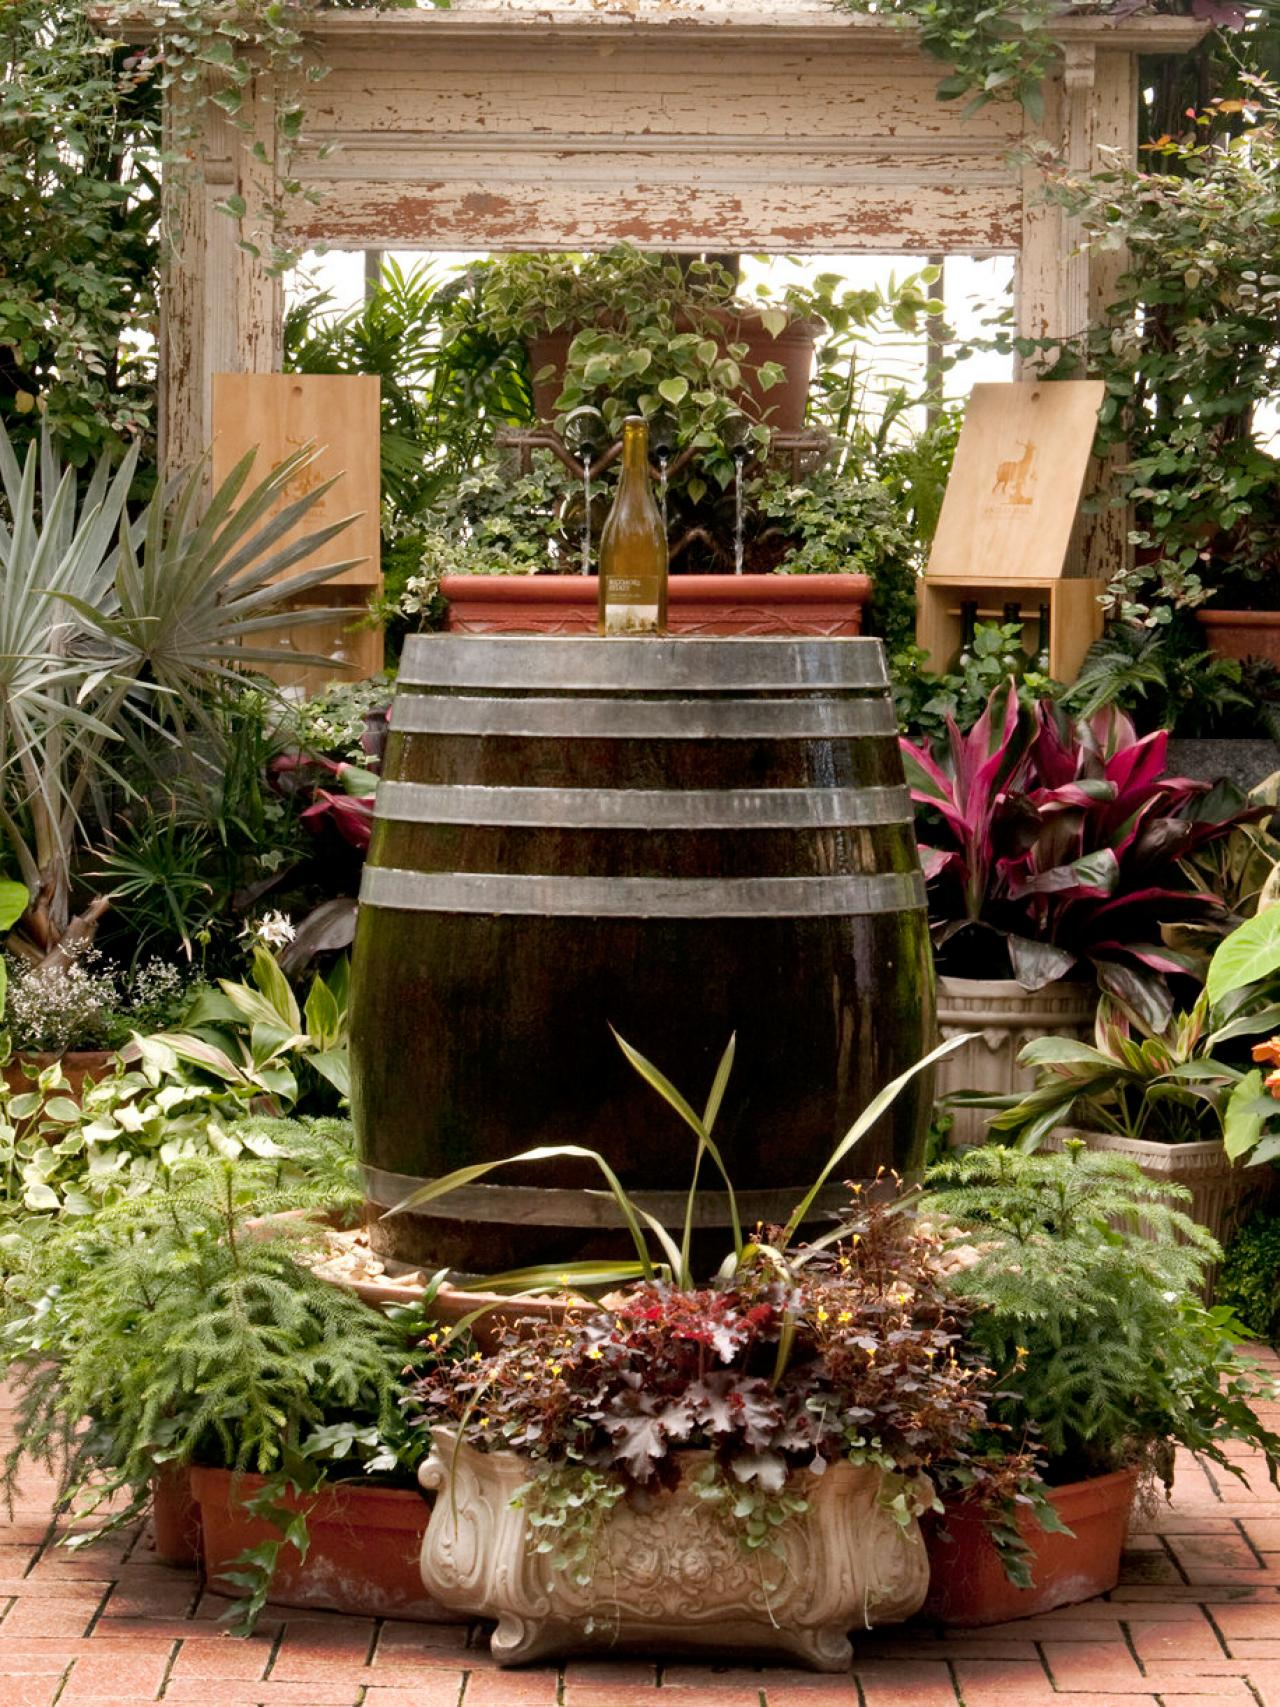 Wine Barrel Fountain and Bottle Diy Wine